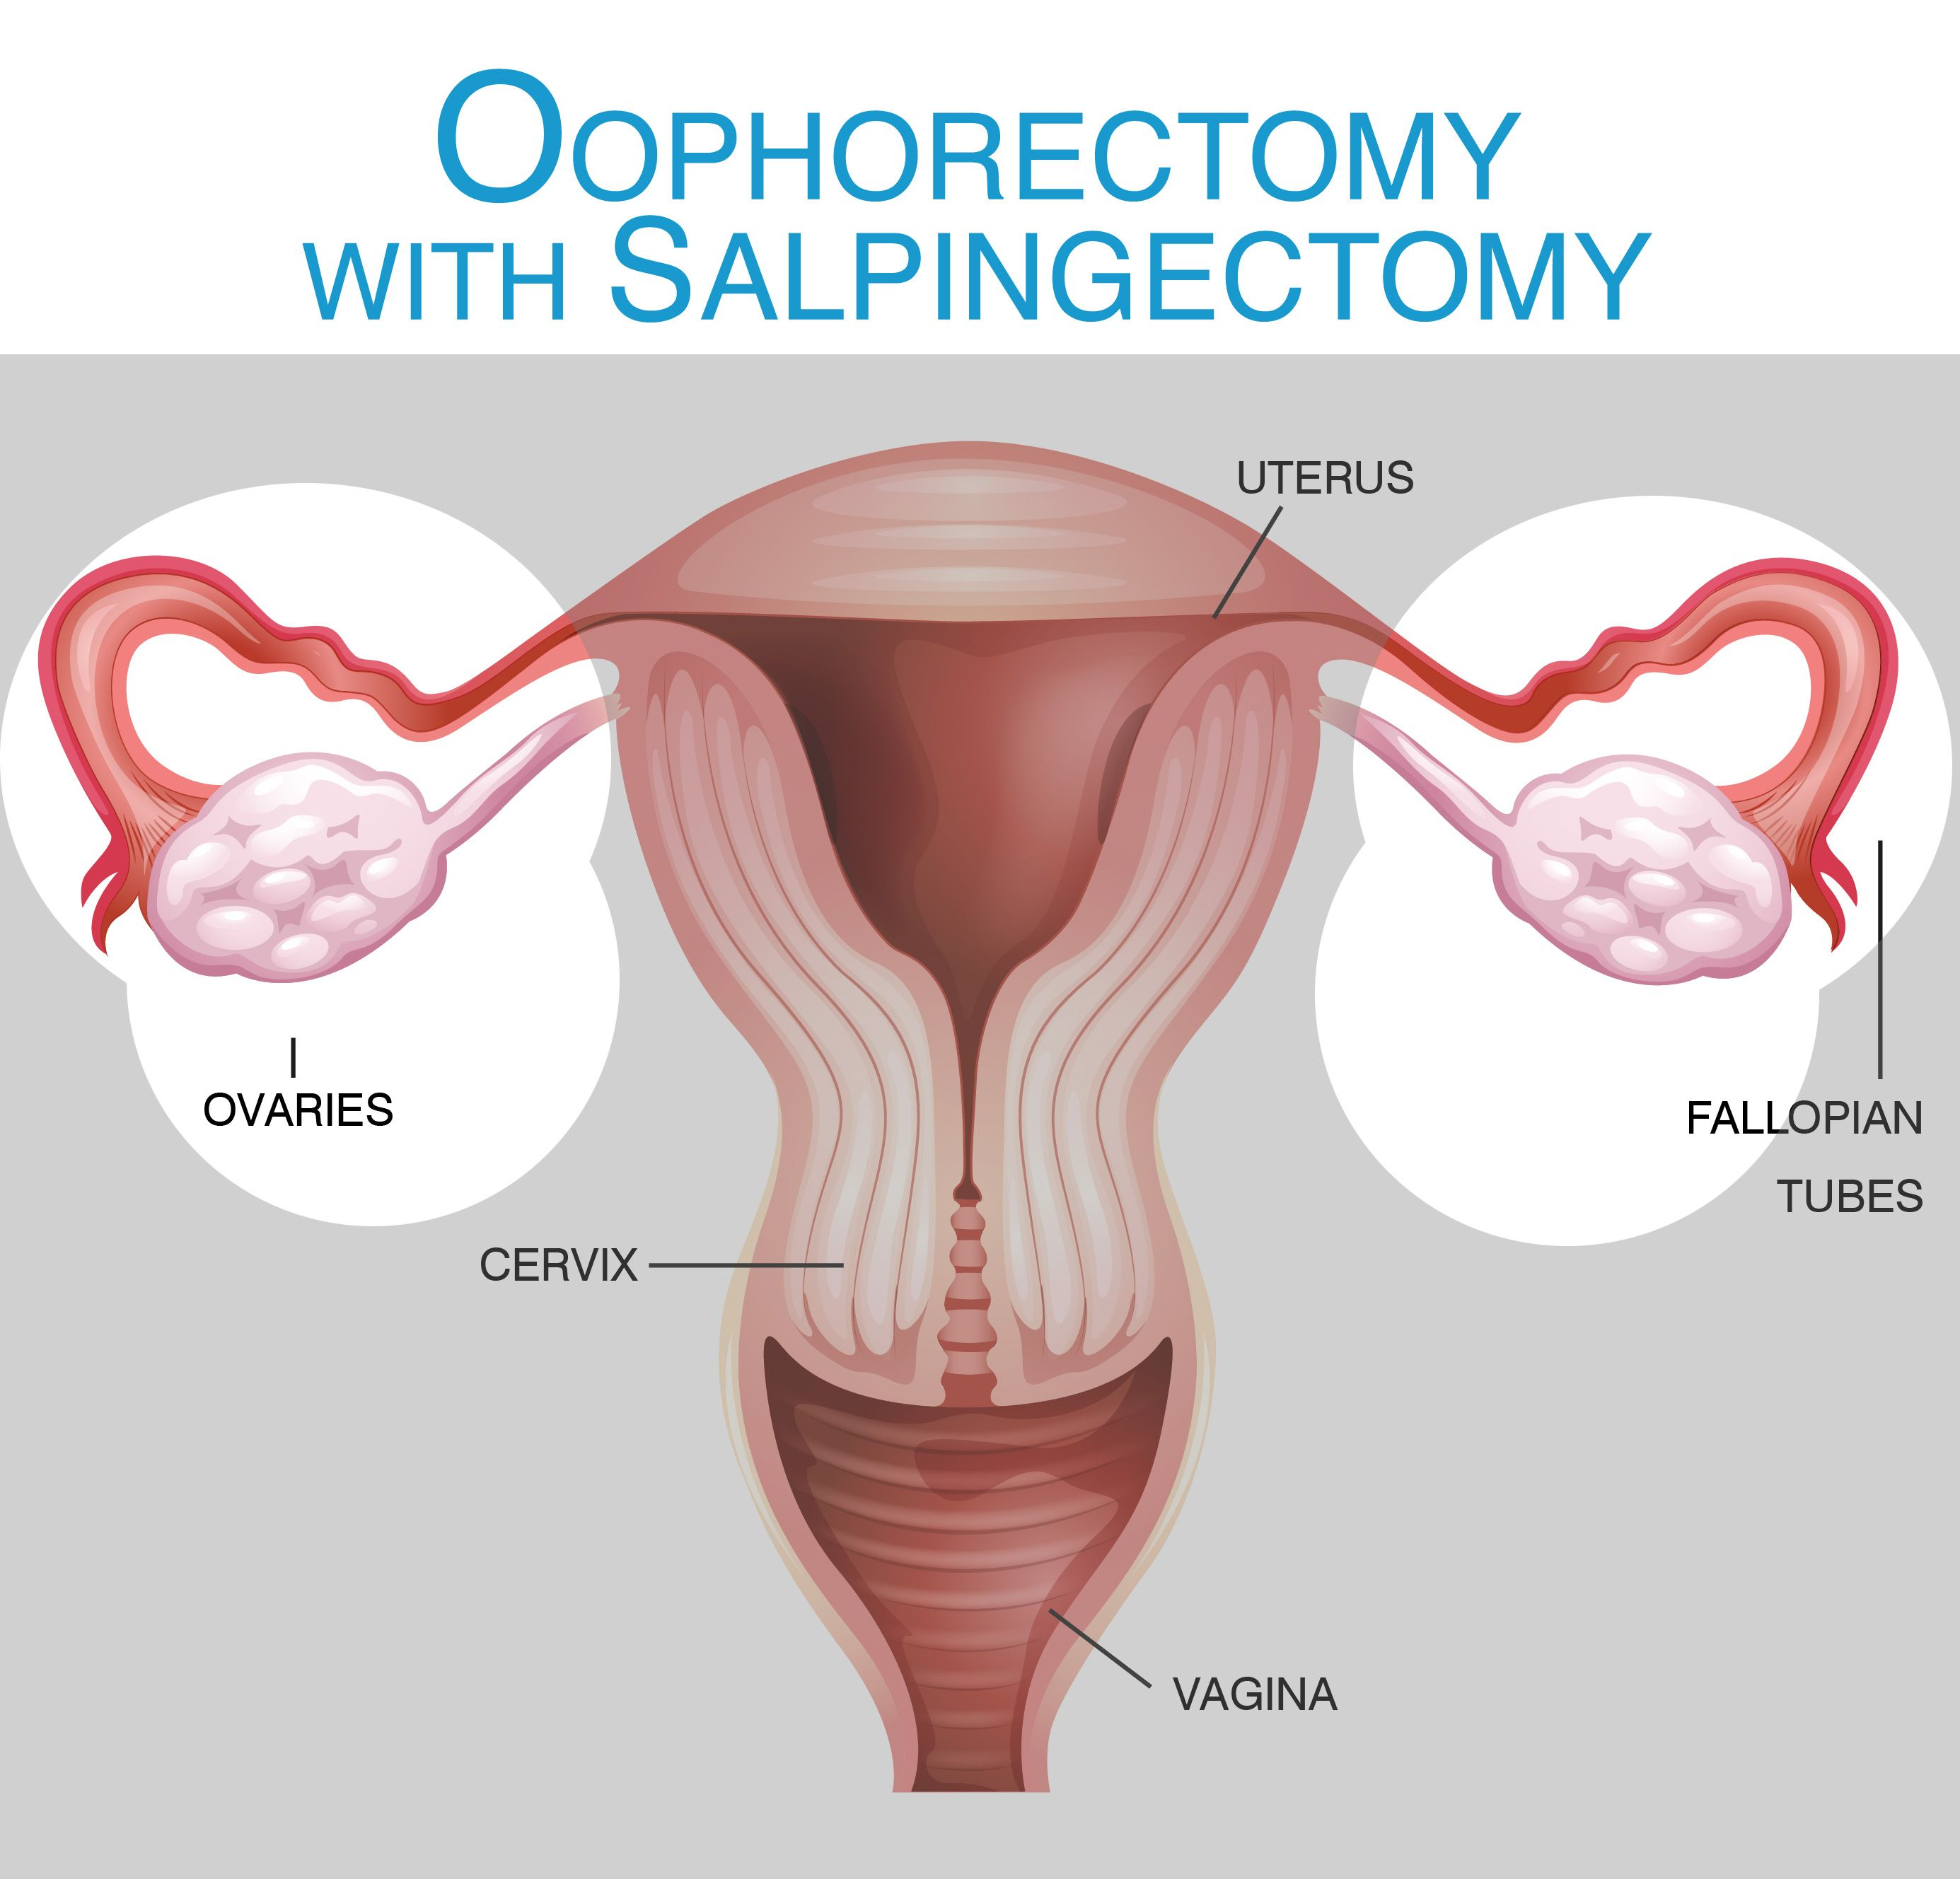 Oophorectomy-Salpingectomy  Hysterectomy Information -8519